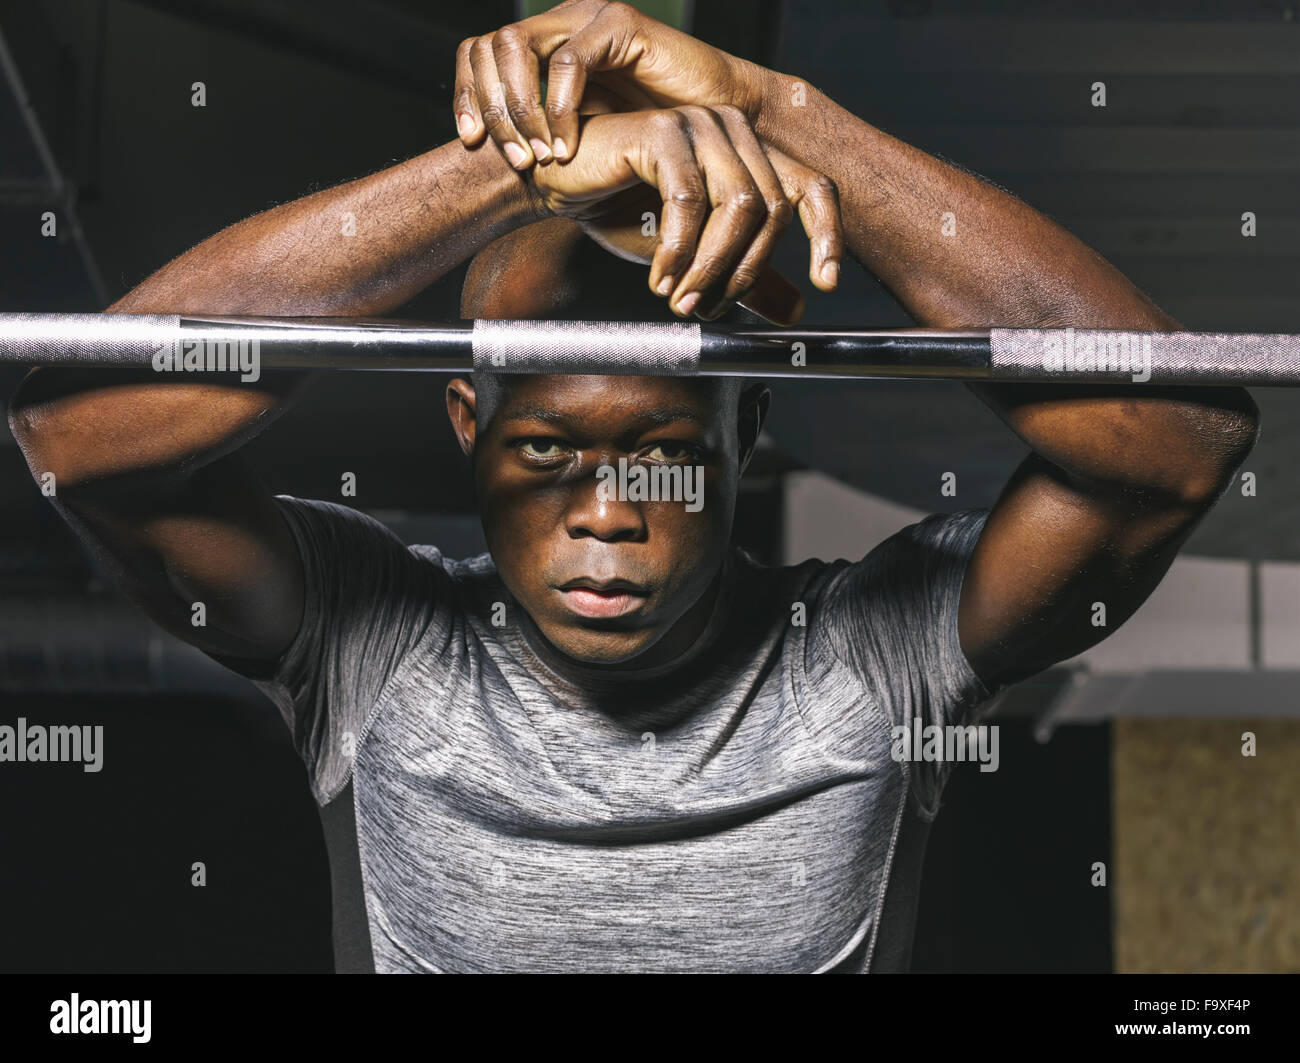 Portrait of physical athlete resting on barbell in gym - Stock Image